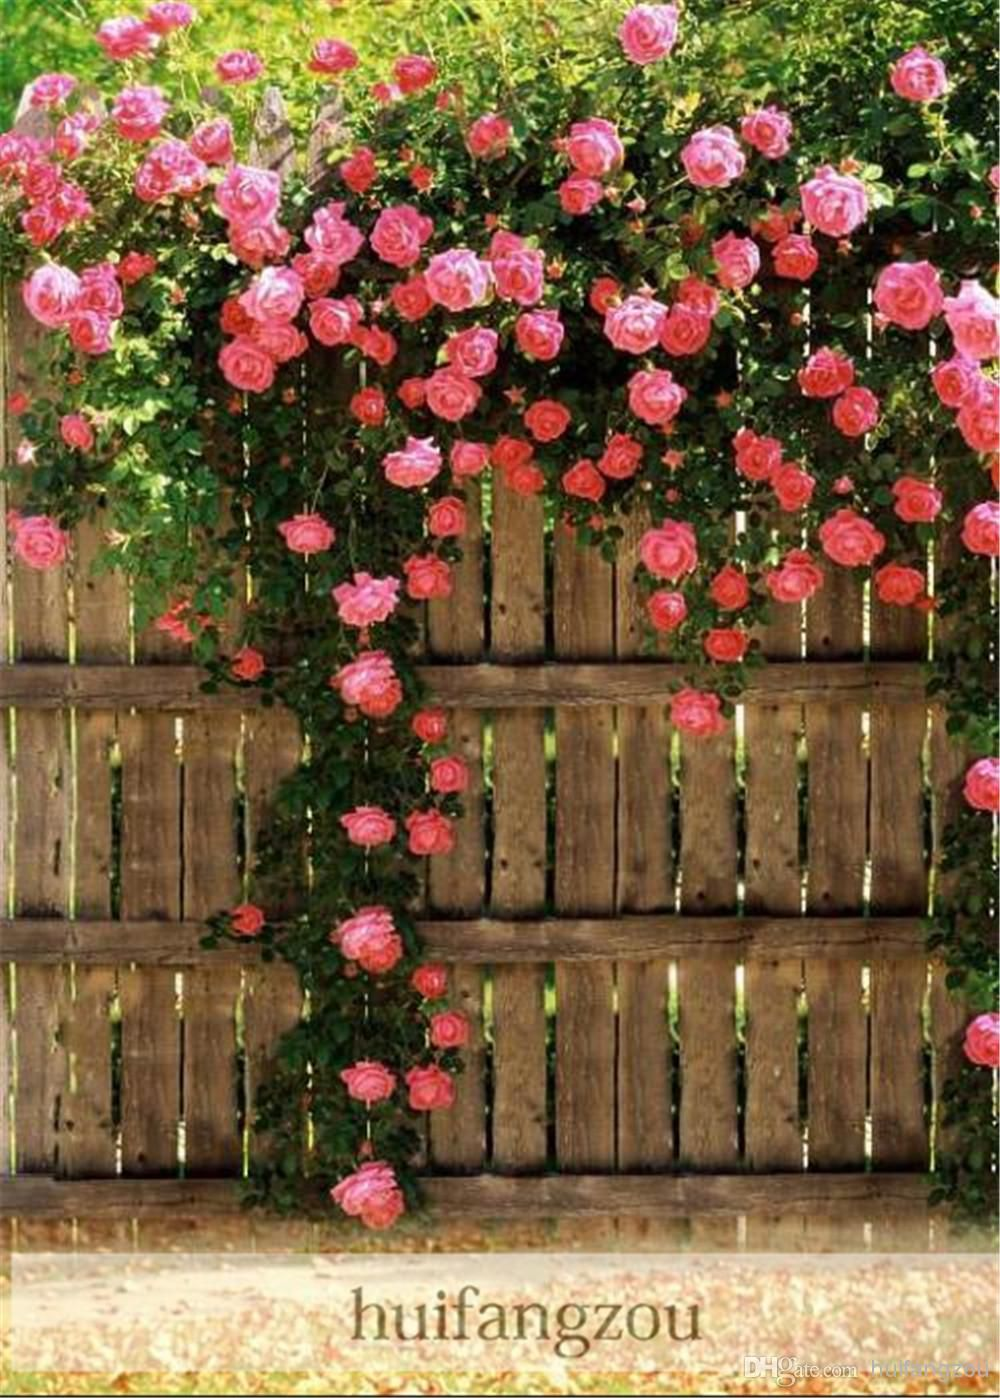 English rose gardens english rose garden seend - Hot Sale Free Shipping 100 Seeds Climbing Rose Seeds Plants Spend Climbing Roses Seed Potted Flower Home Plant Garden Rose Seeds